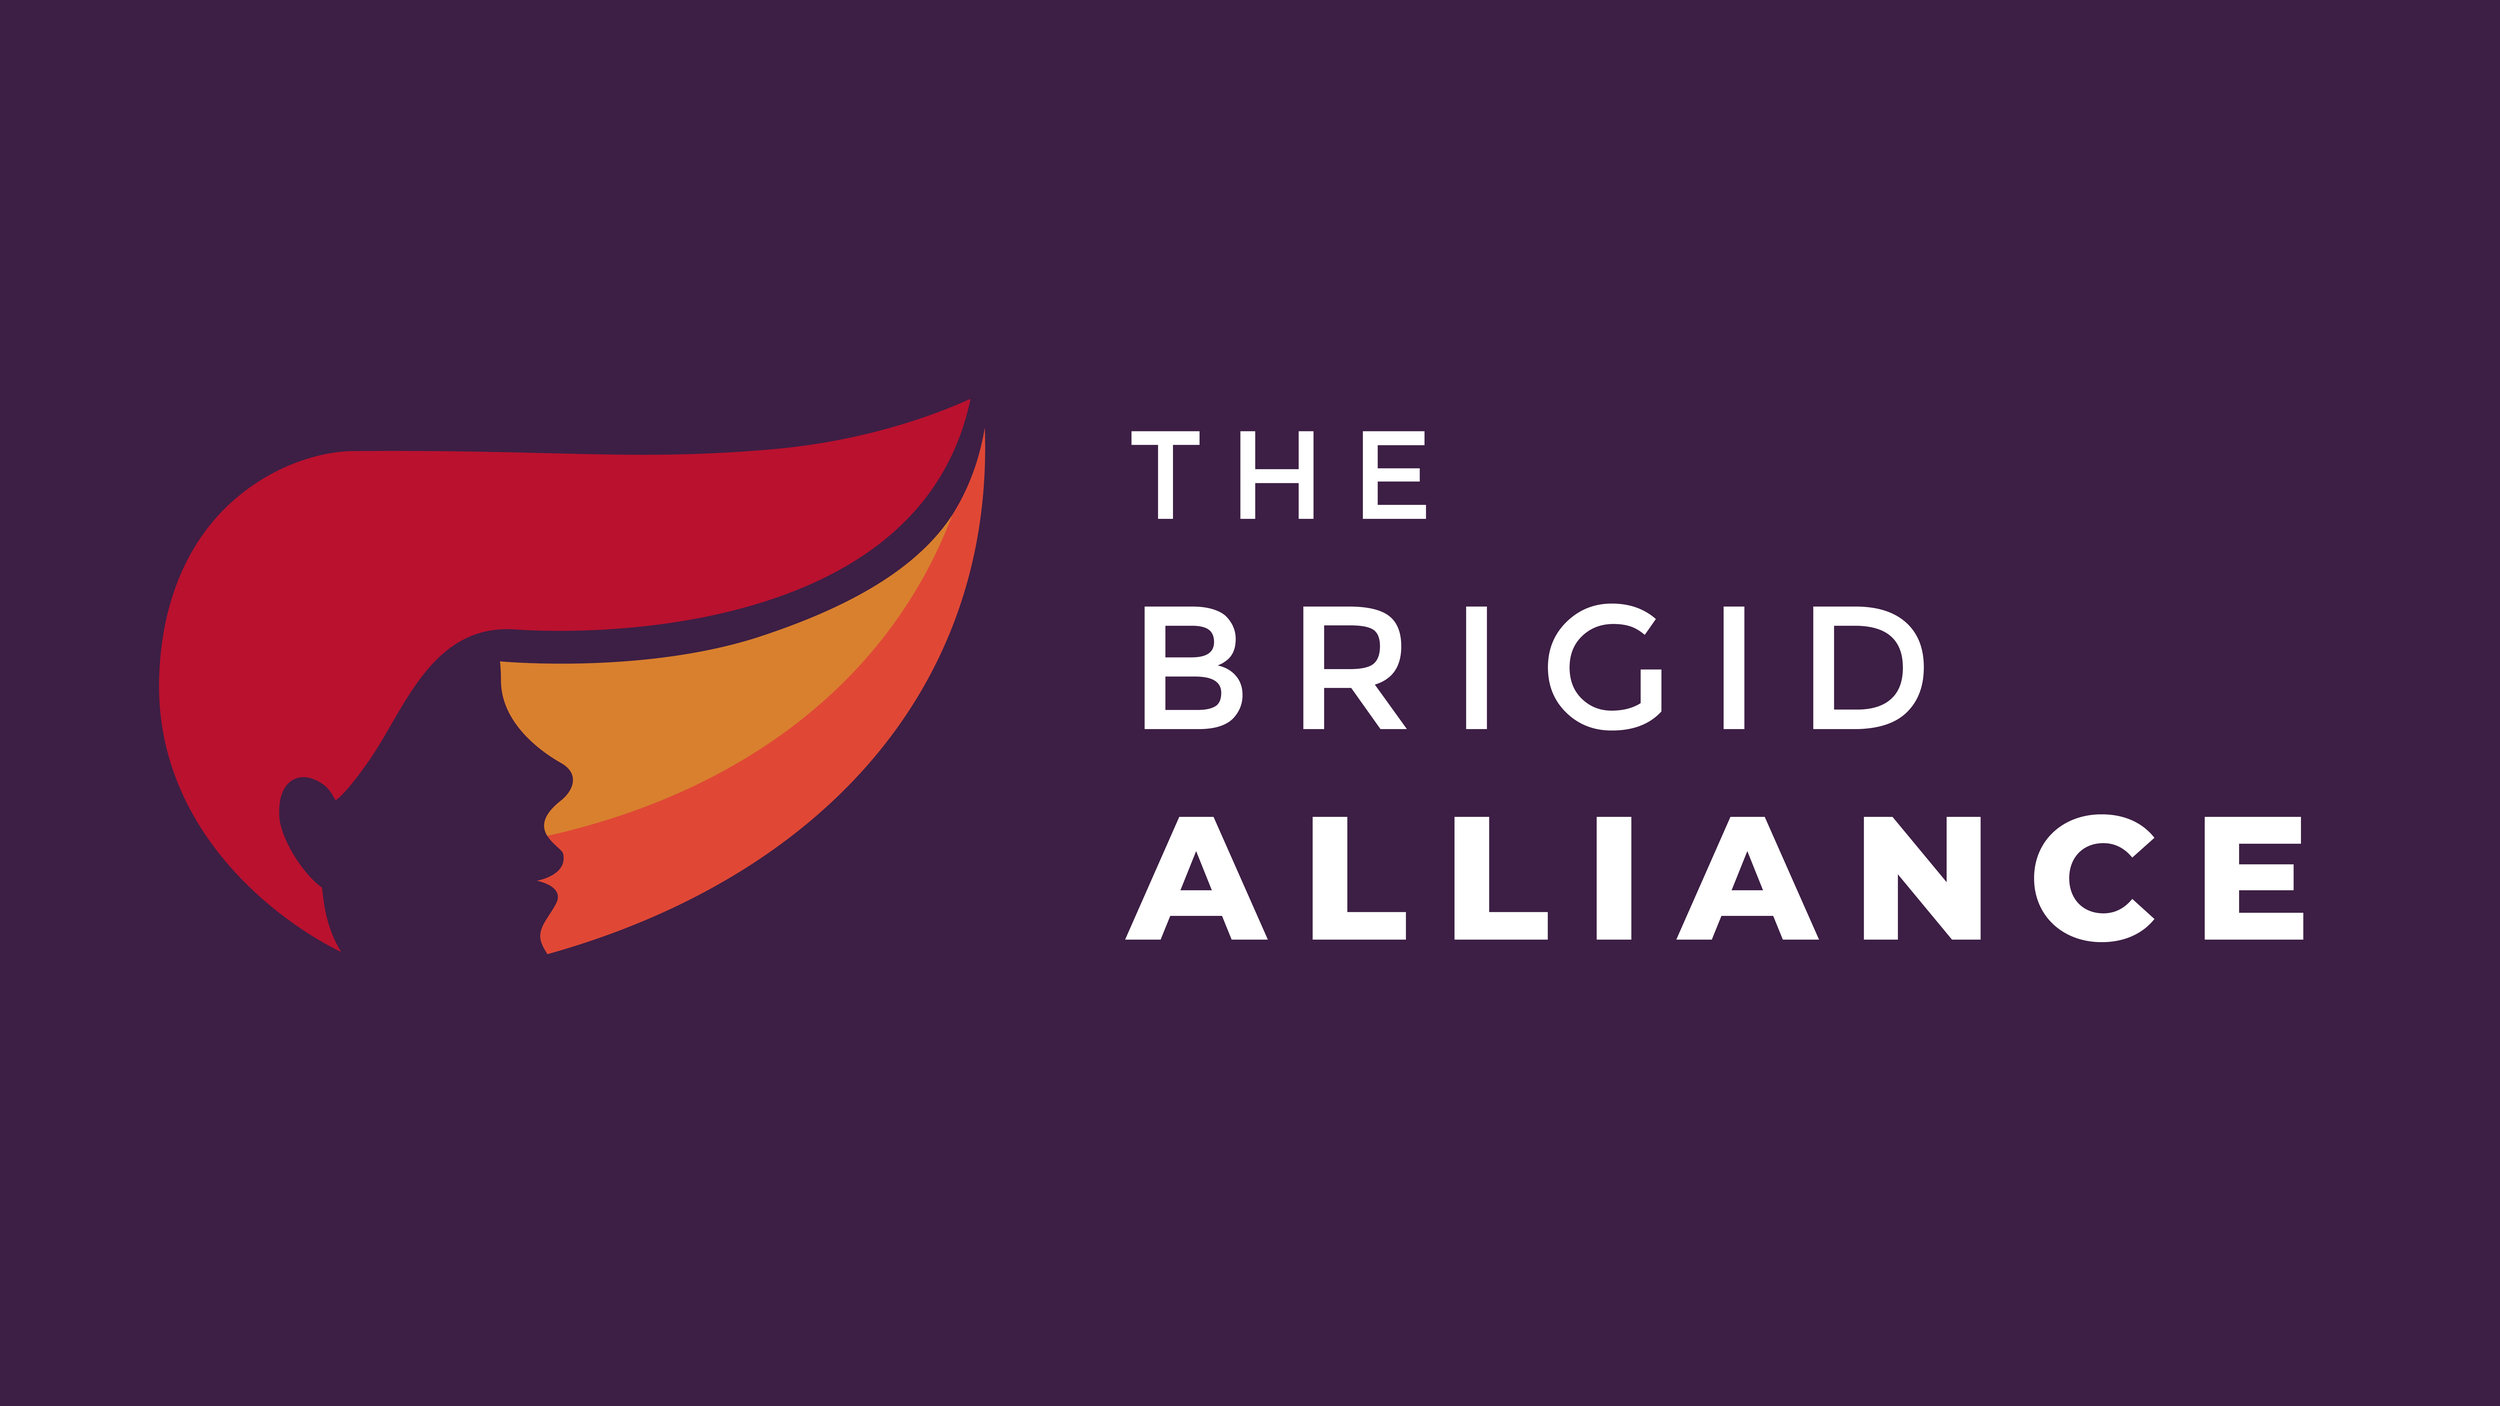 By Lenore Davis, co-founder of The Brigid Alliance -